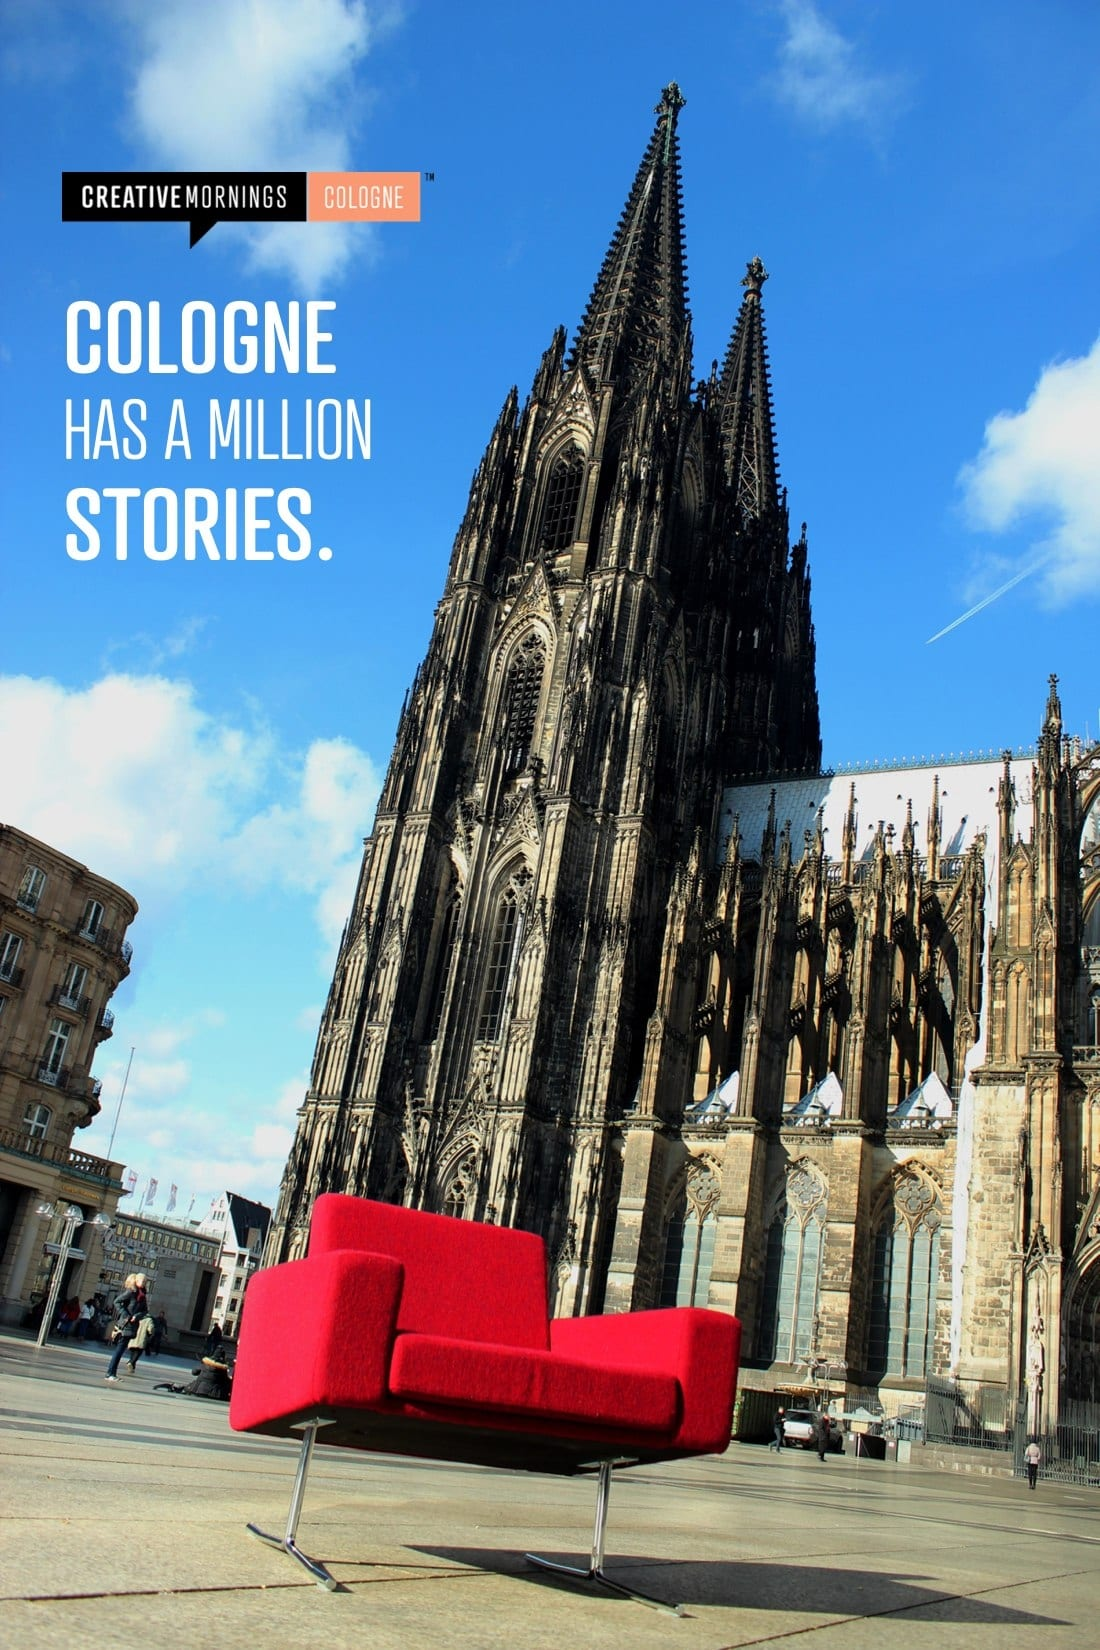 CreativeMornings –Cologne has a million stories.